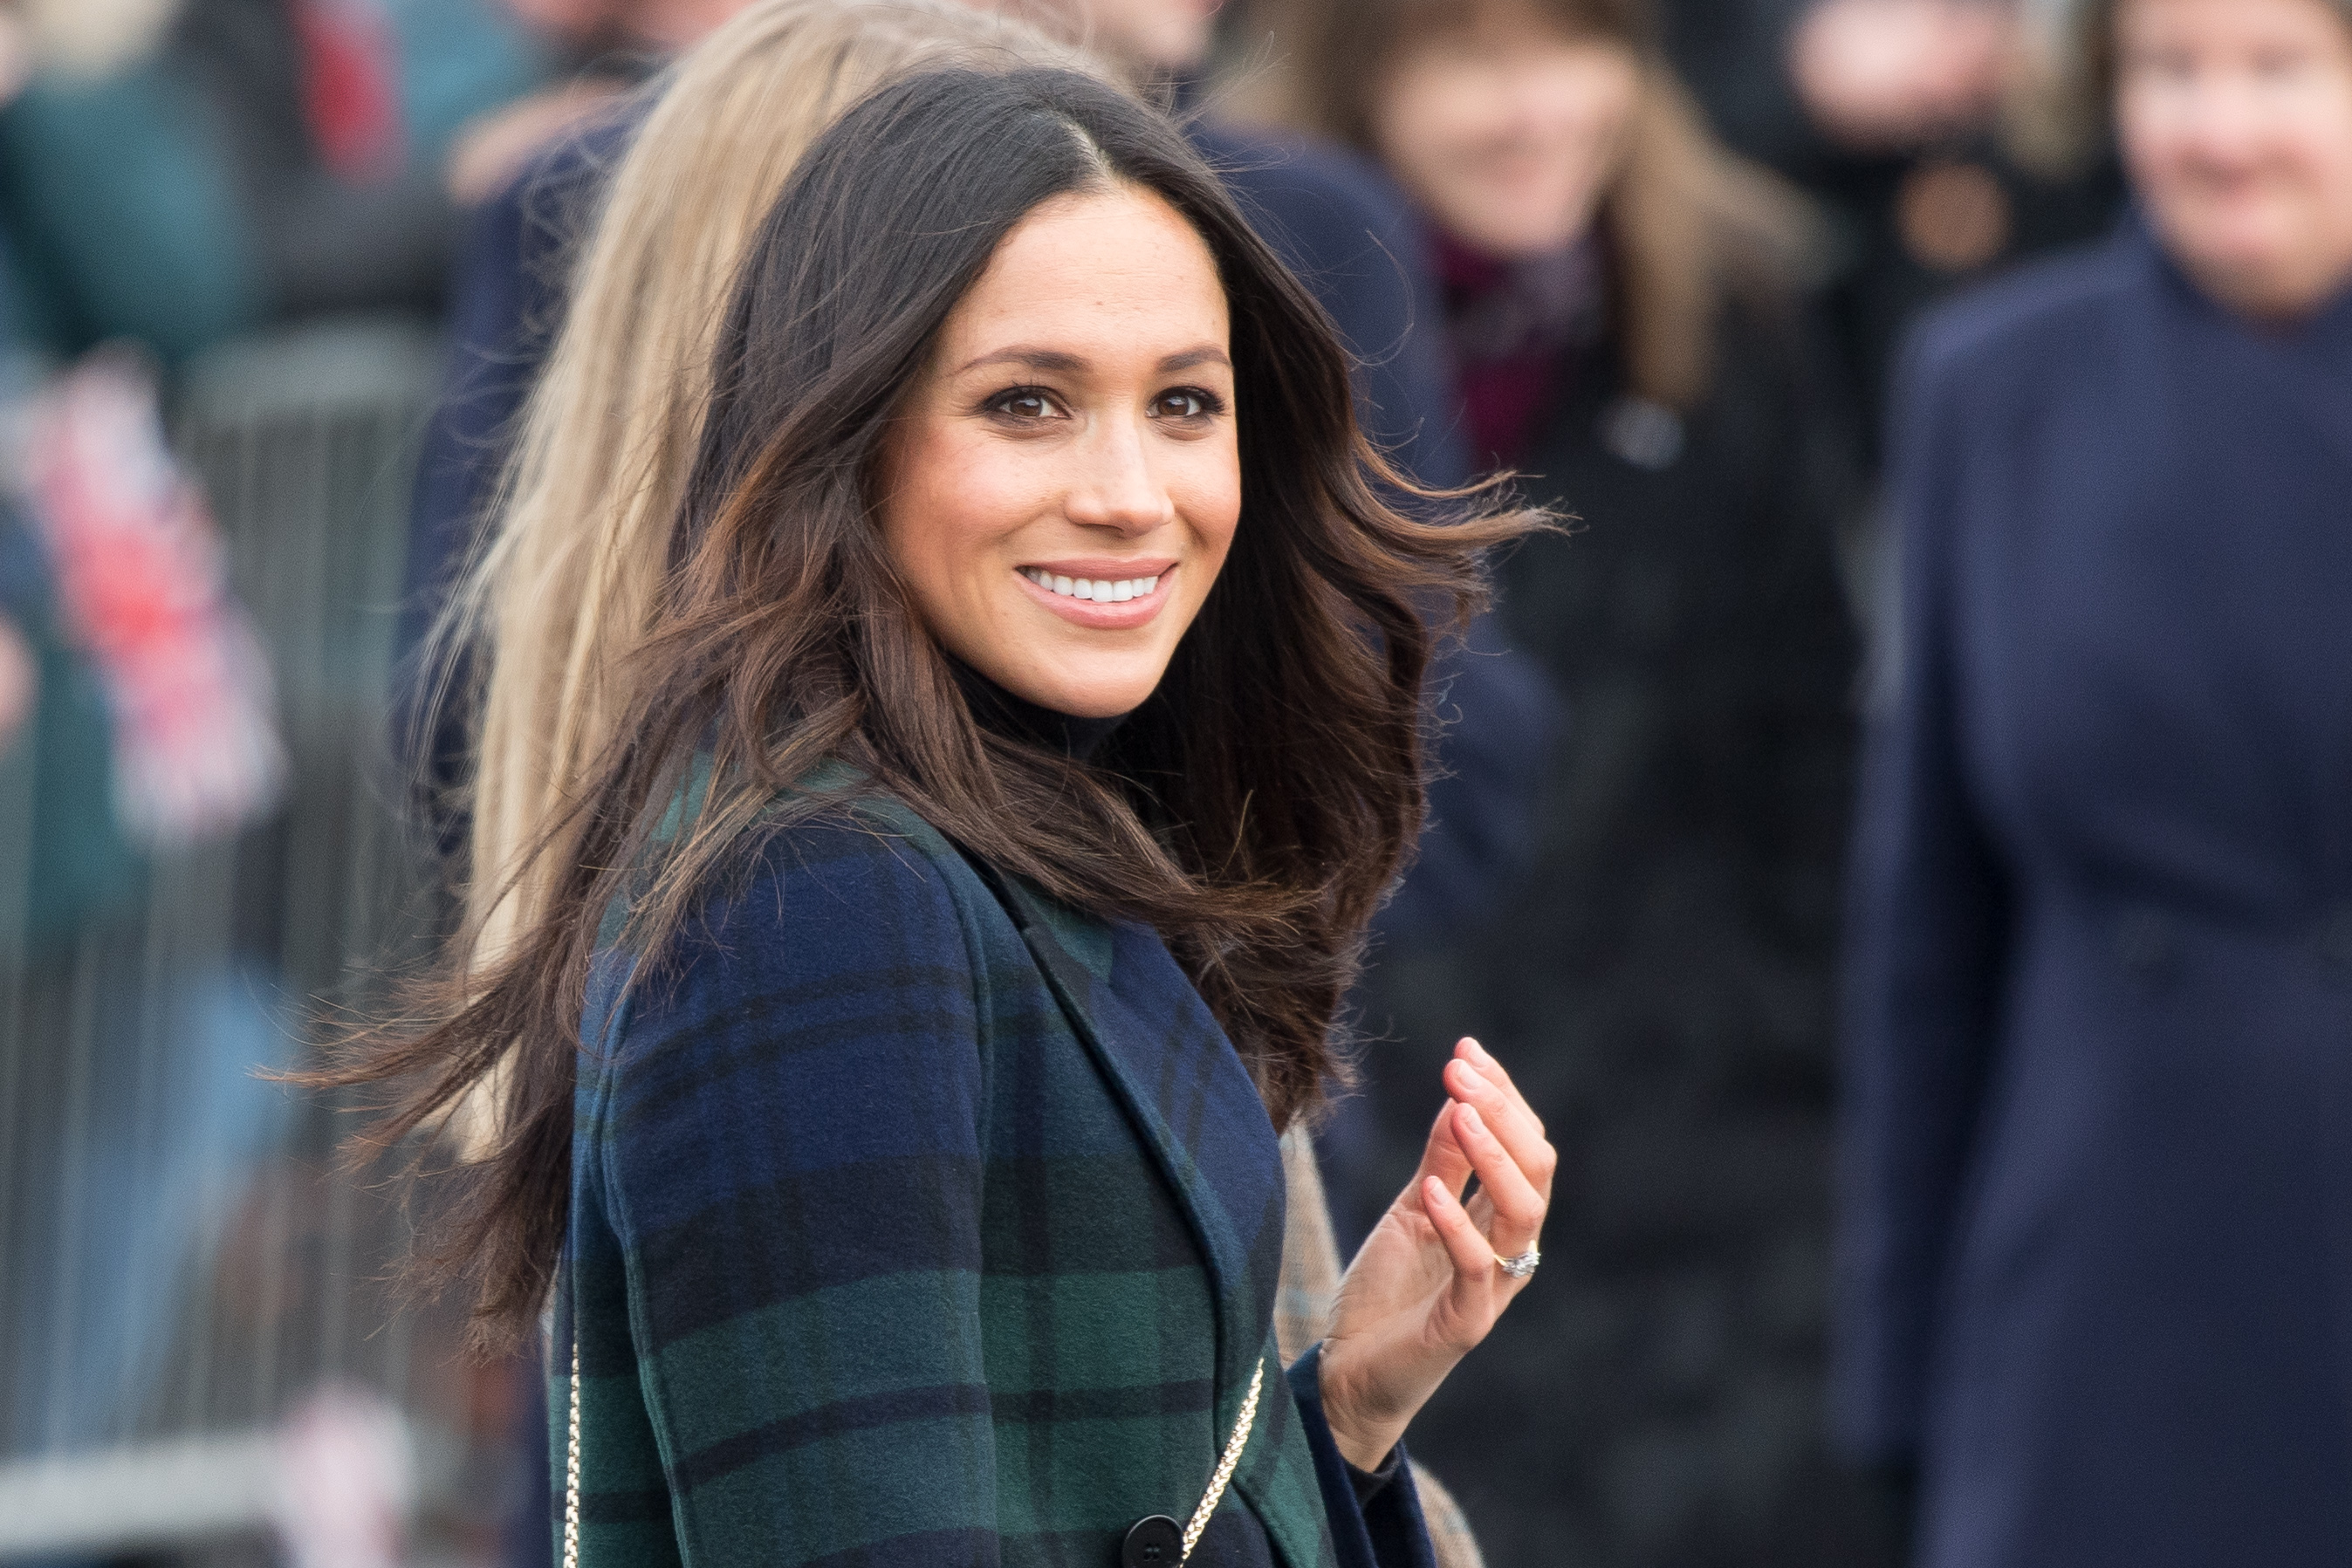 "Erwin Gomez of KARMA salon says he expects Meghan ""will have a classic, flawless look with defined eyes, and will be sticking with neutral tones and a cranberry{ } lip.{ }She is going to make it her own, but also respect that she's the new Princess."" (Image: Dutch Press Photo/WENN.com)"